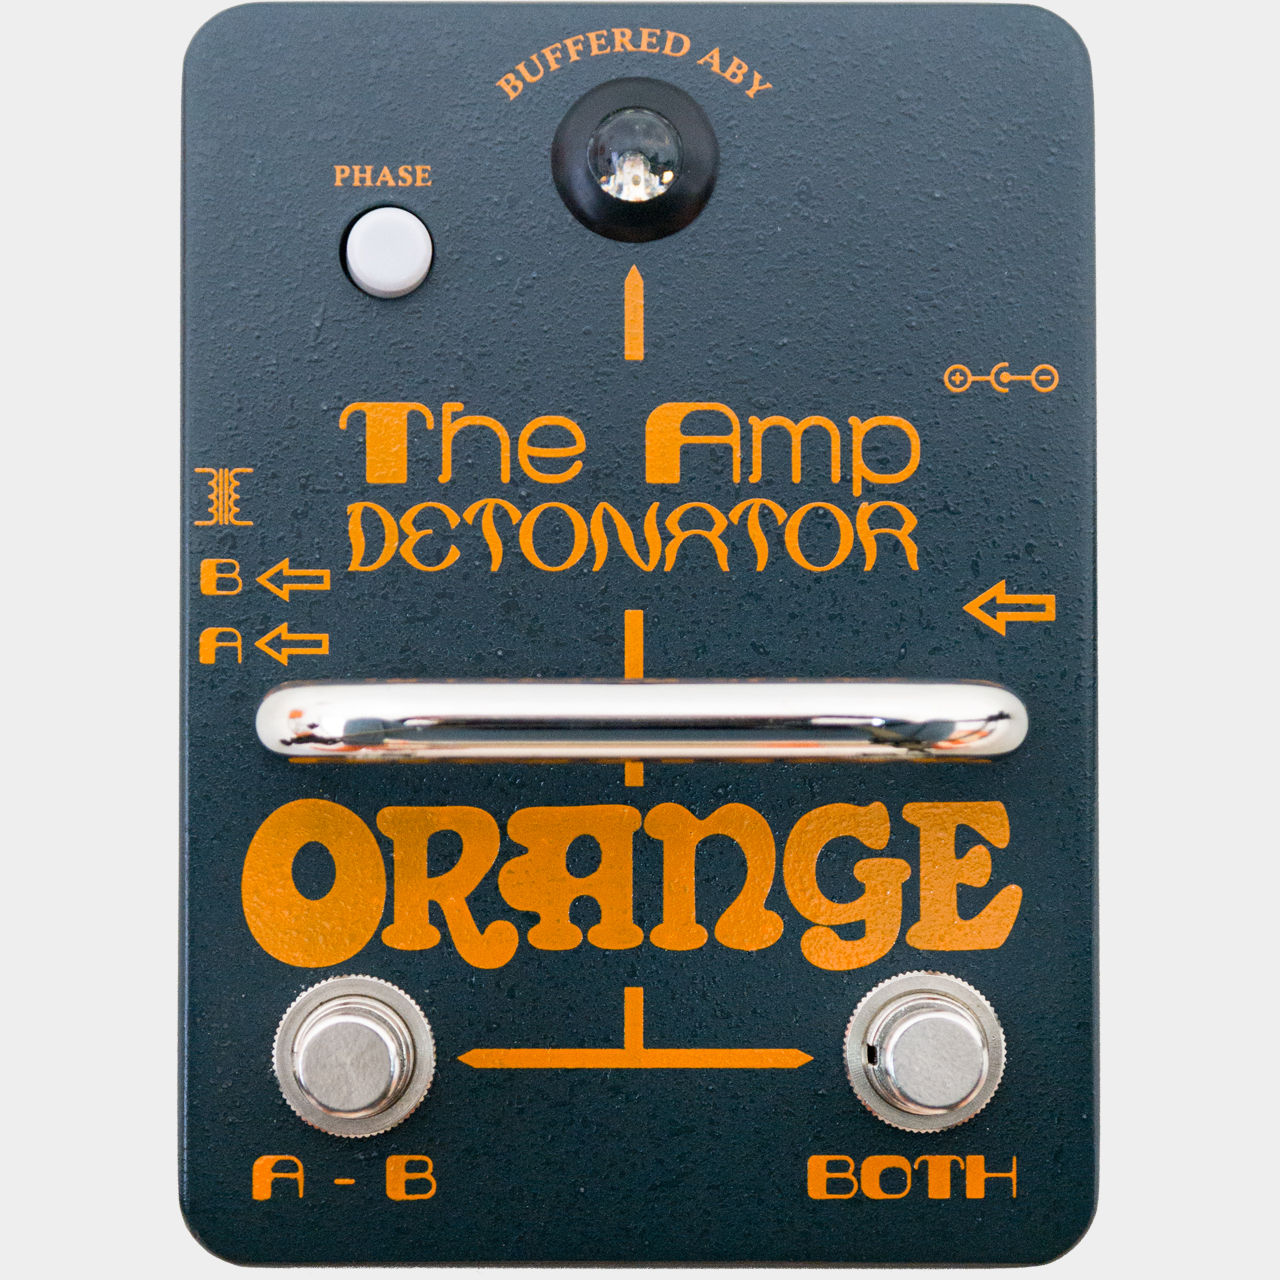 Orange Amp Detonator ABY Box